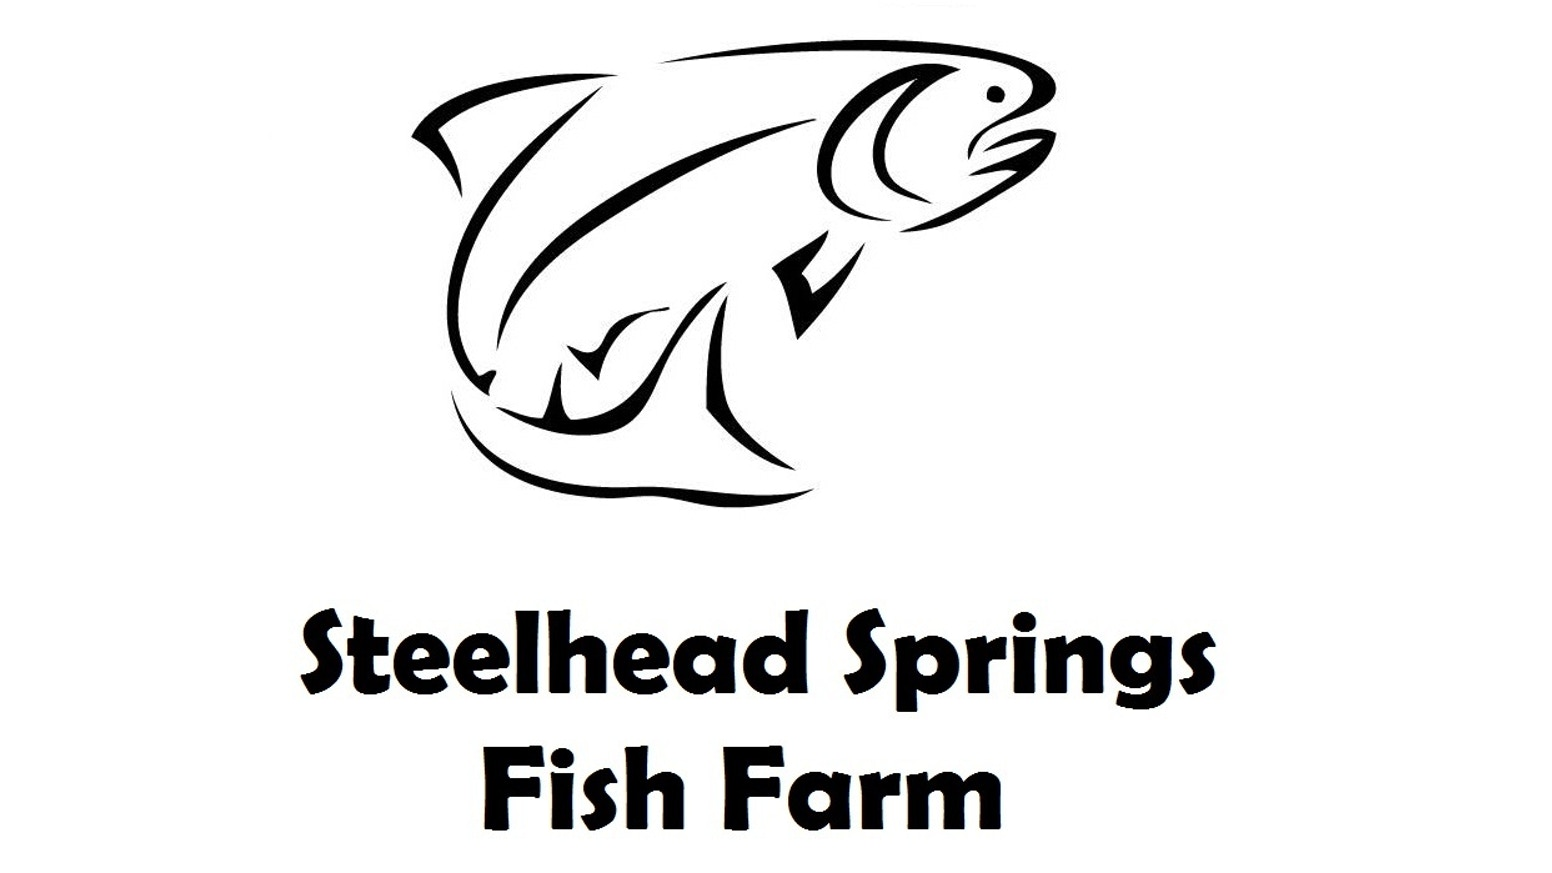 Steelhead Springs Fish Farm by Daniel Bates —Kickstarter